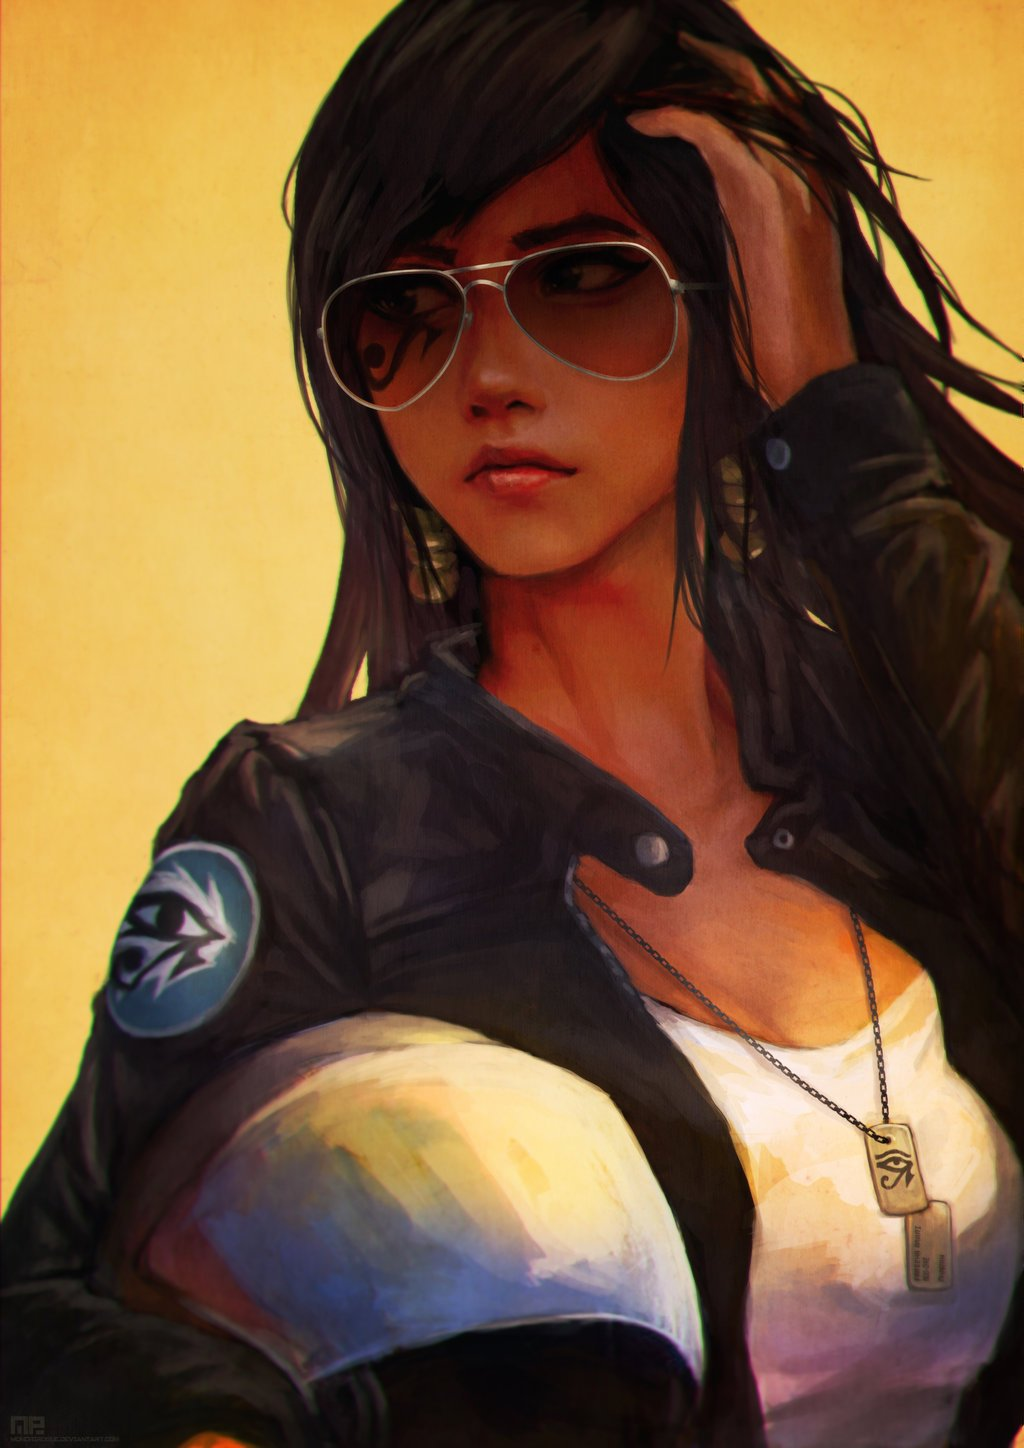 casual_pharah_by_monorirogue-da428cc